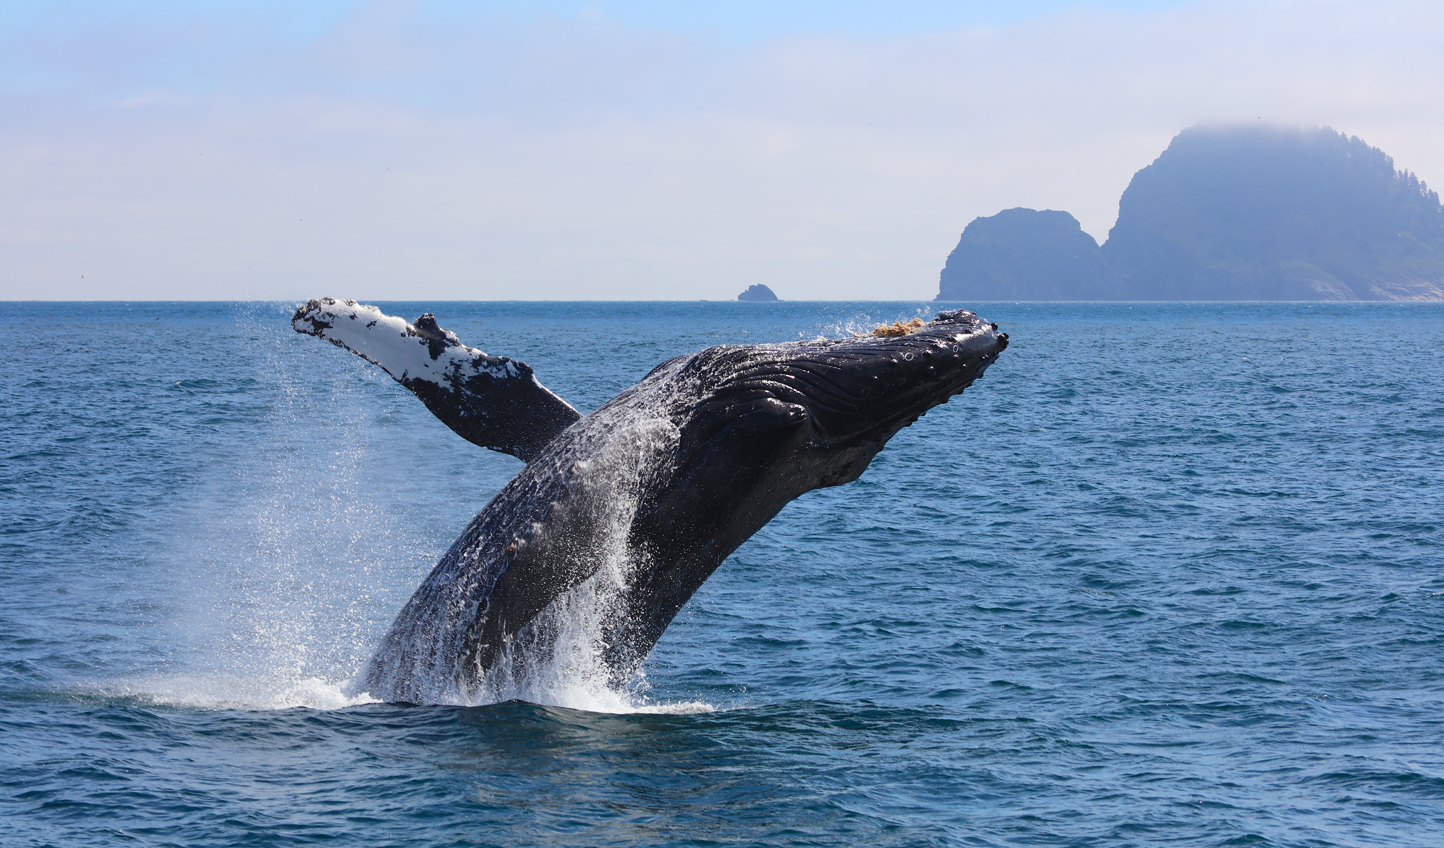 Go in search of breaching humpback whales